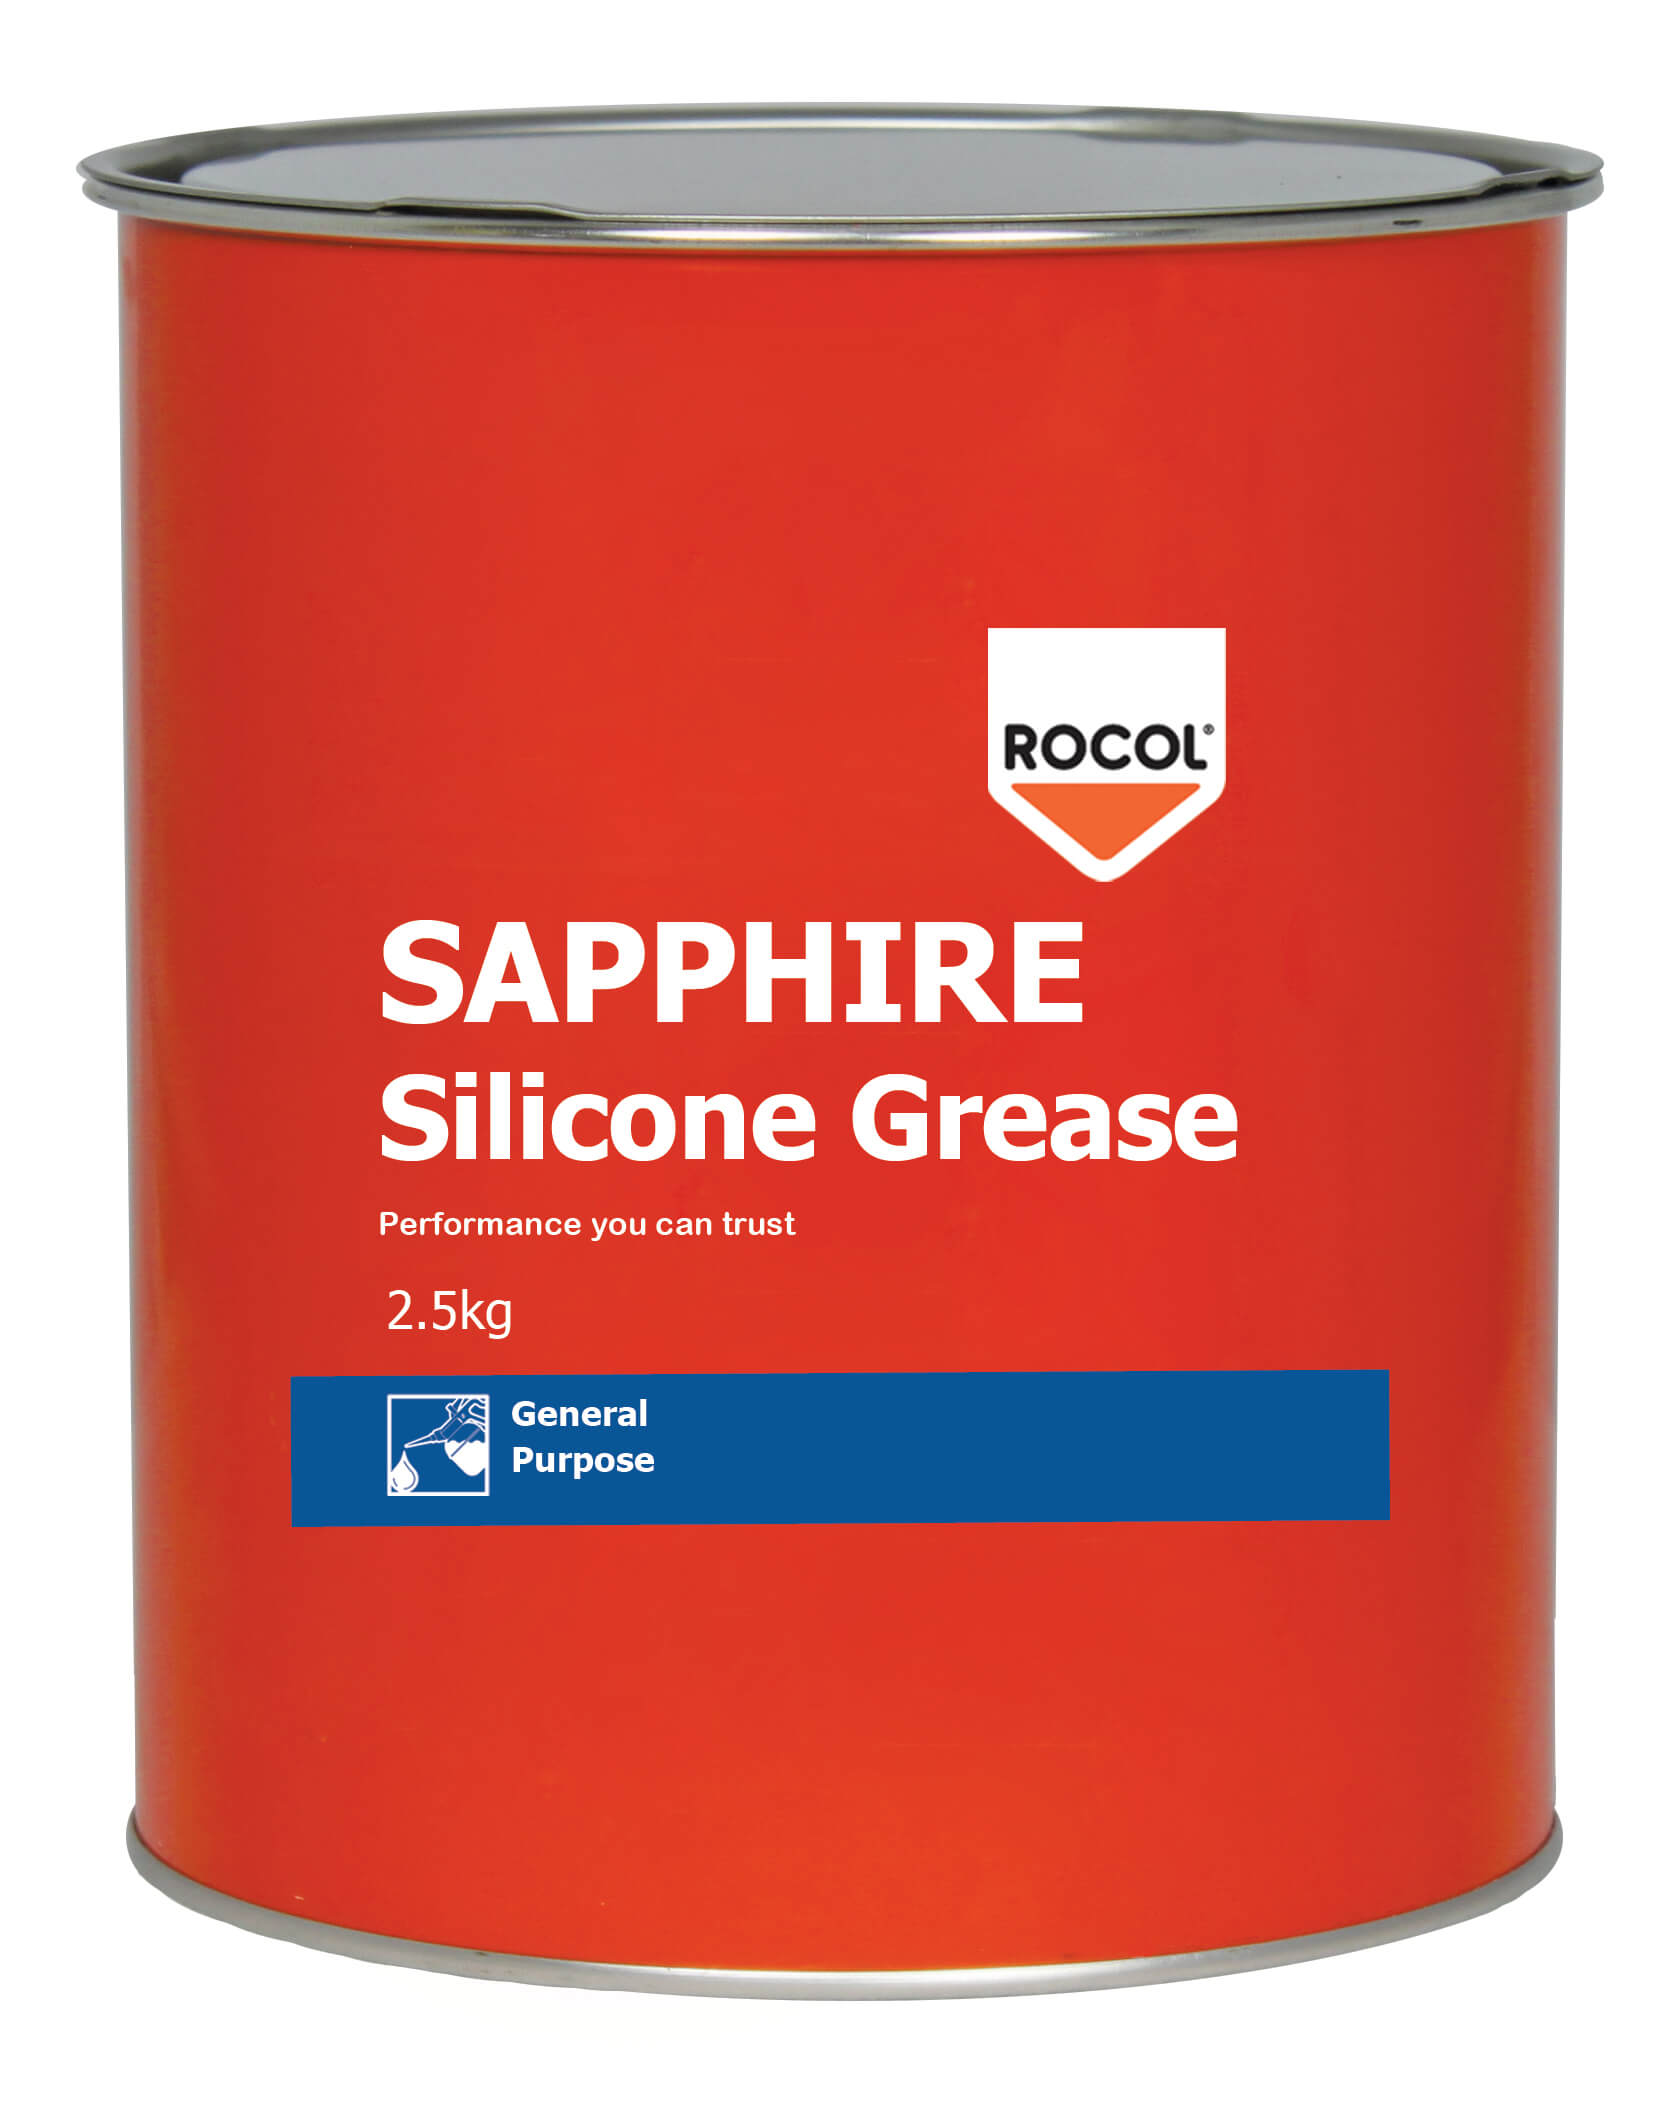 Silicone Spray Lubricant >> Images - Rocol